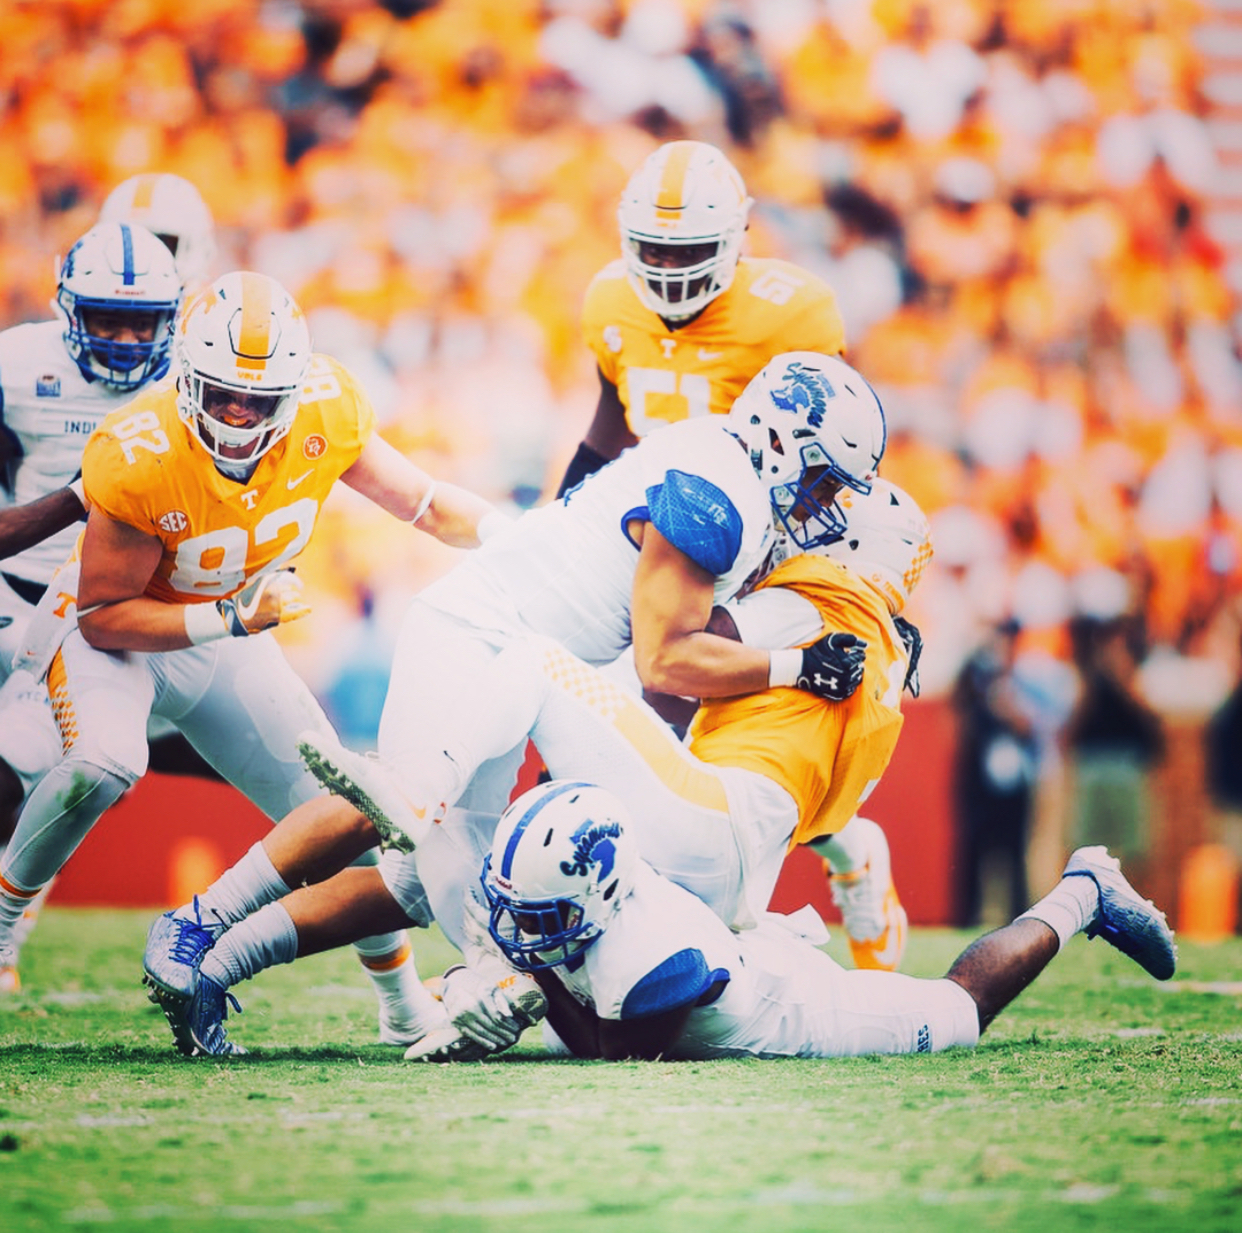 Jackson making a tackle at Tennessee